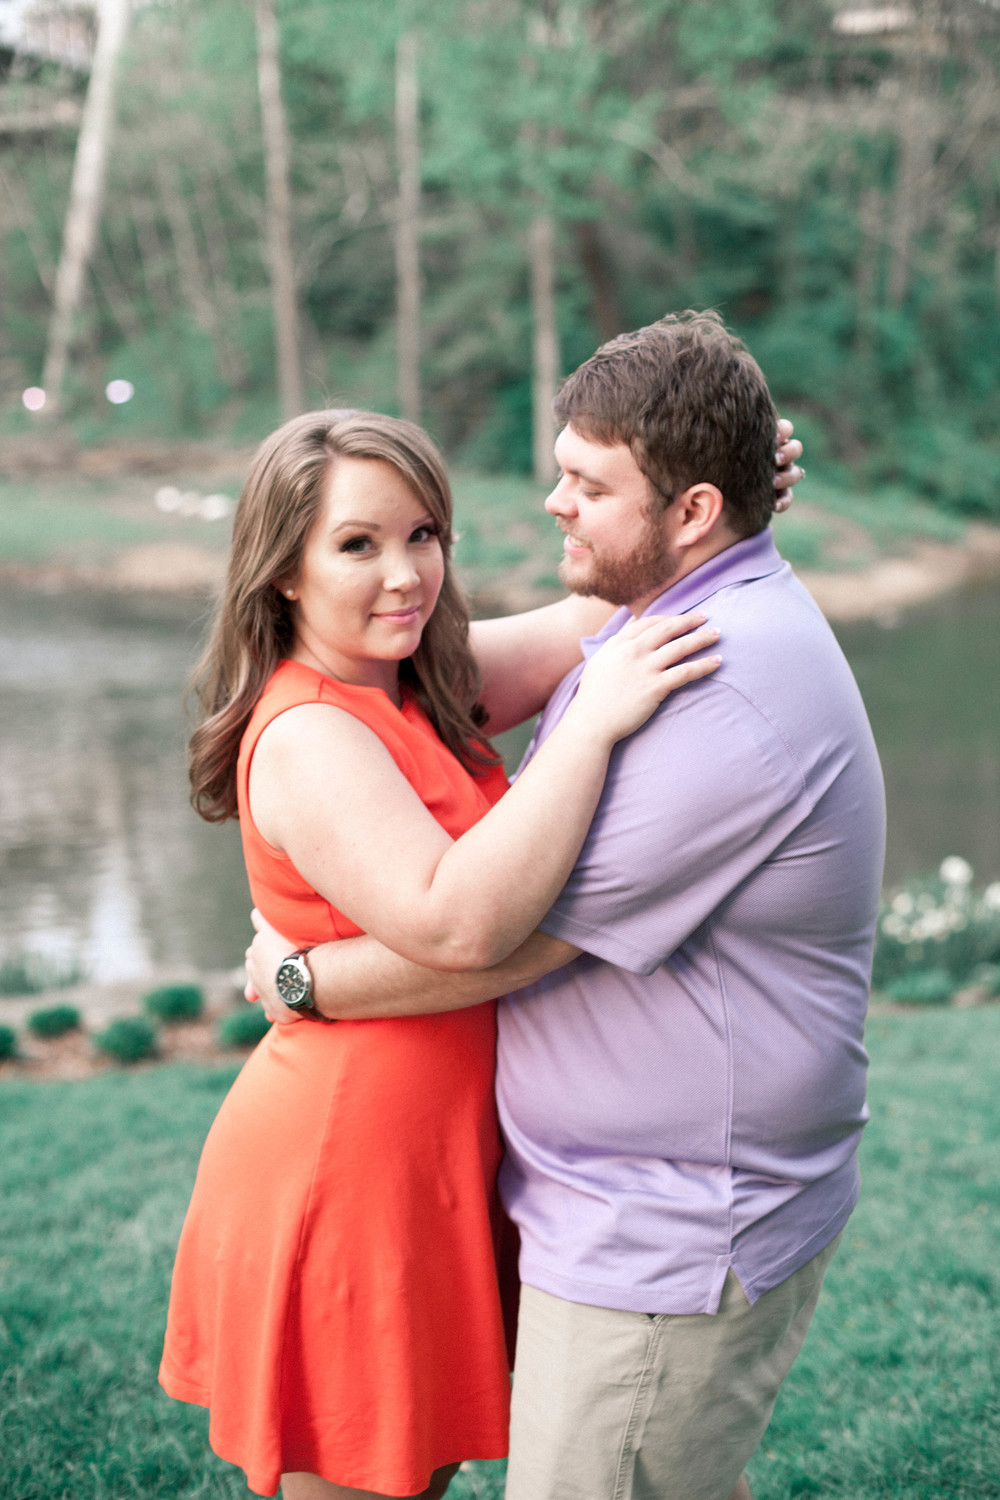 zach_gabbie_engagement_poured_out_photography-45.jpg